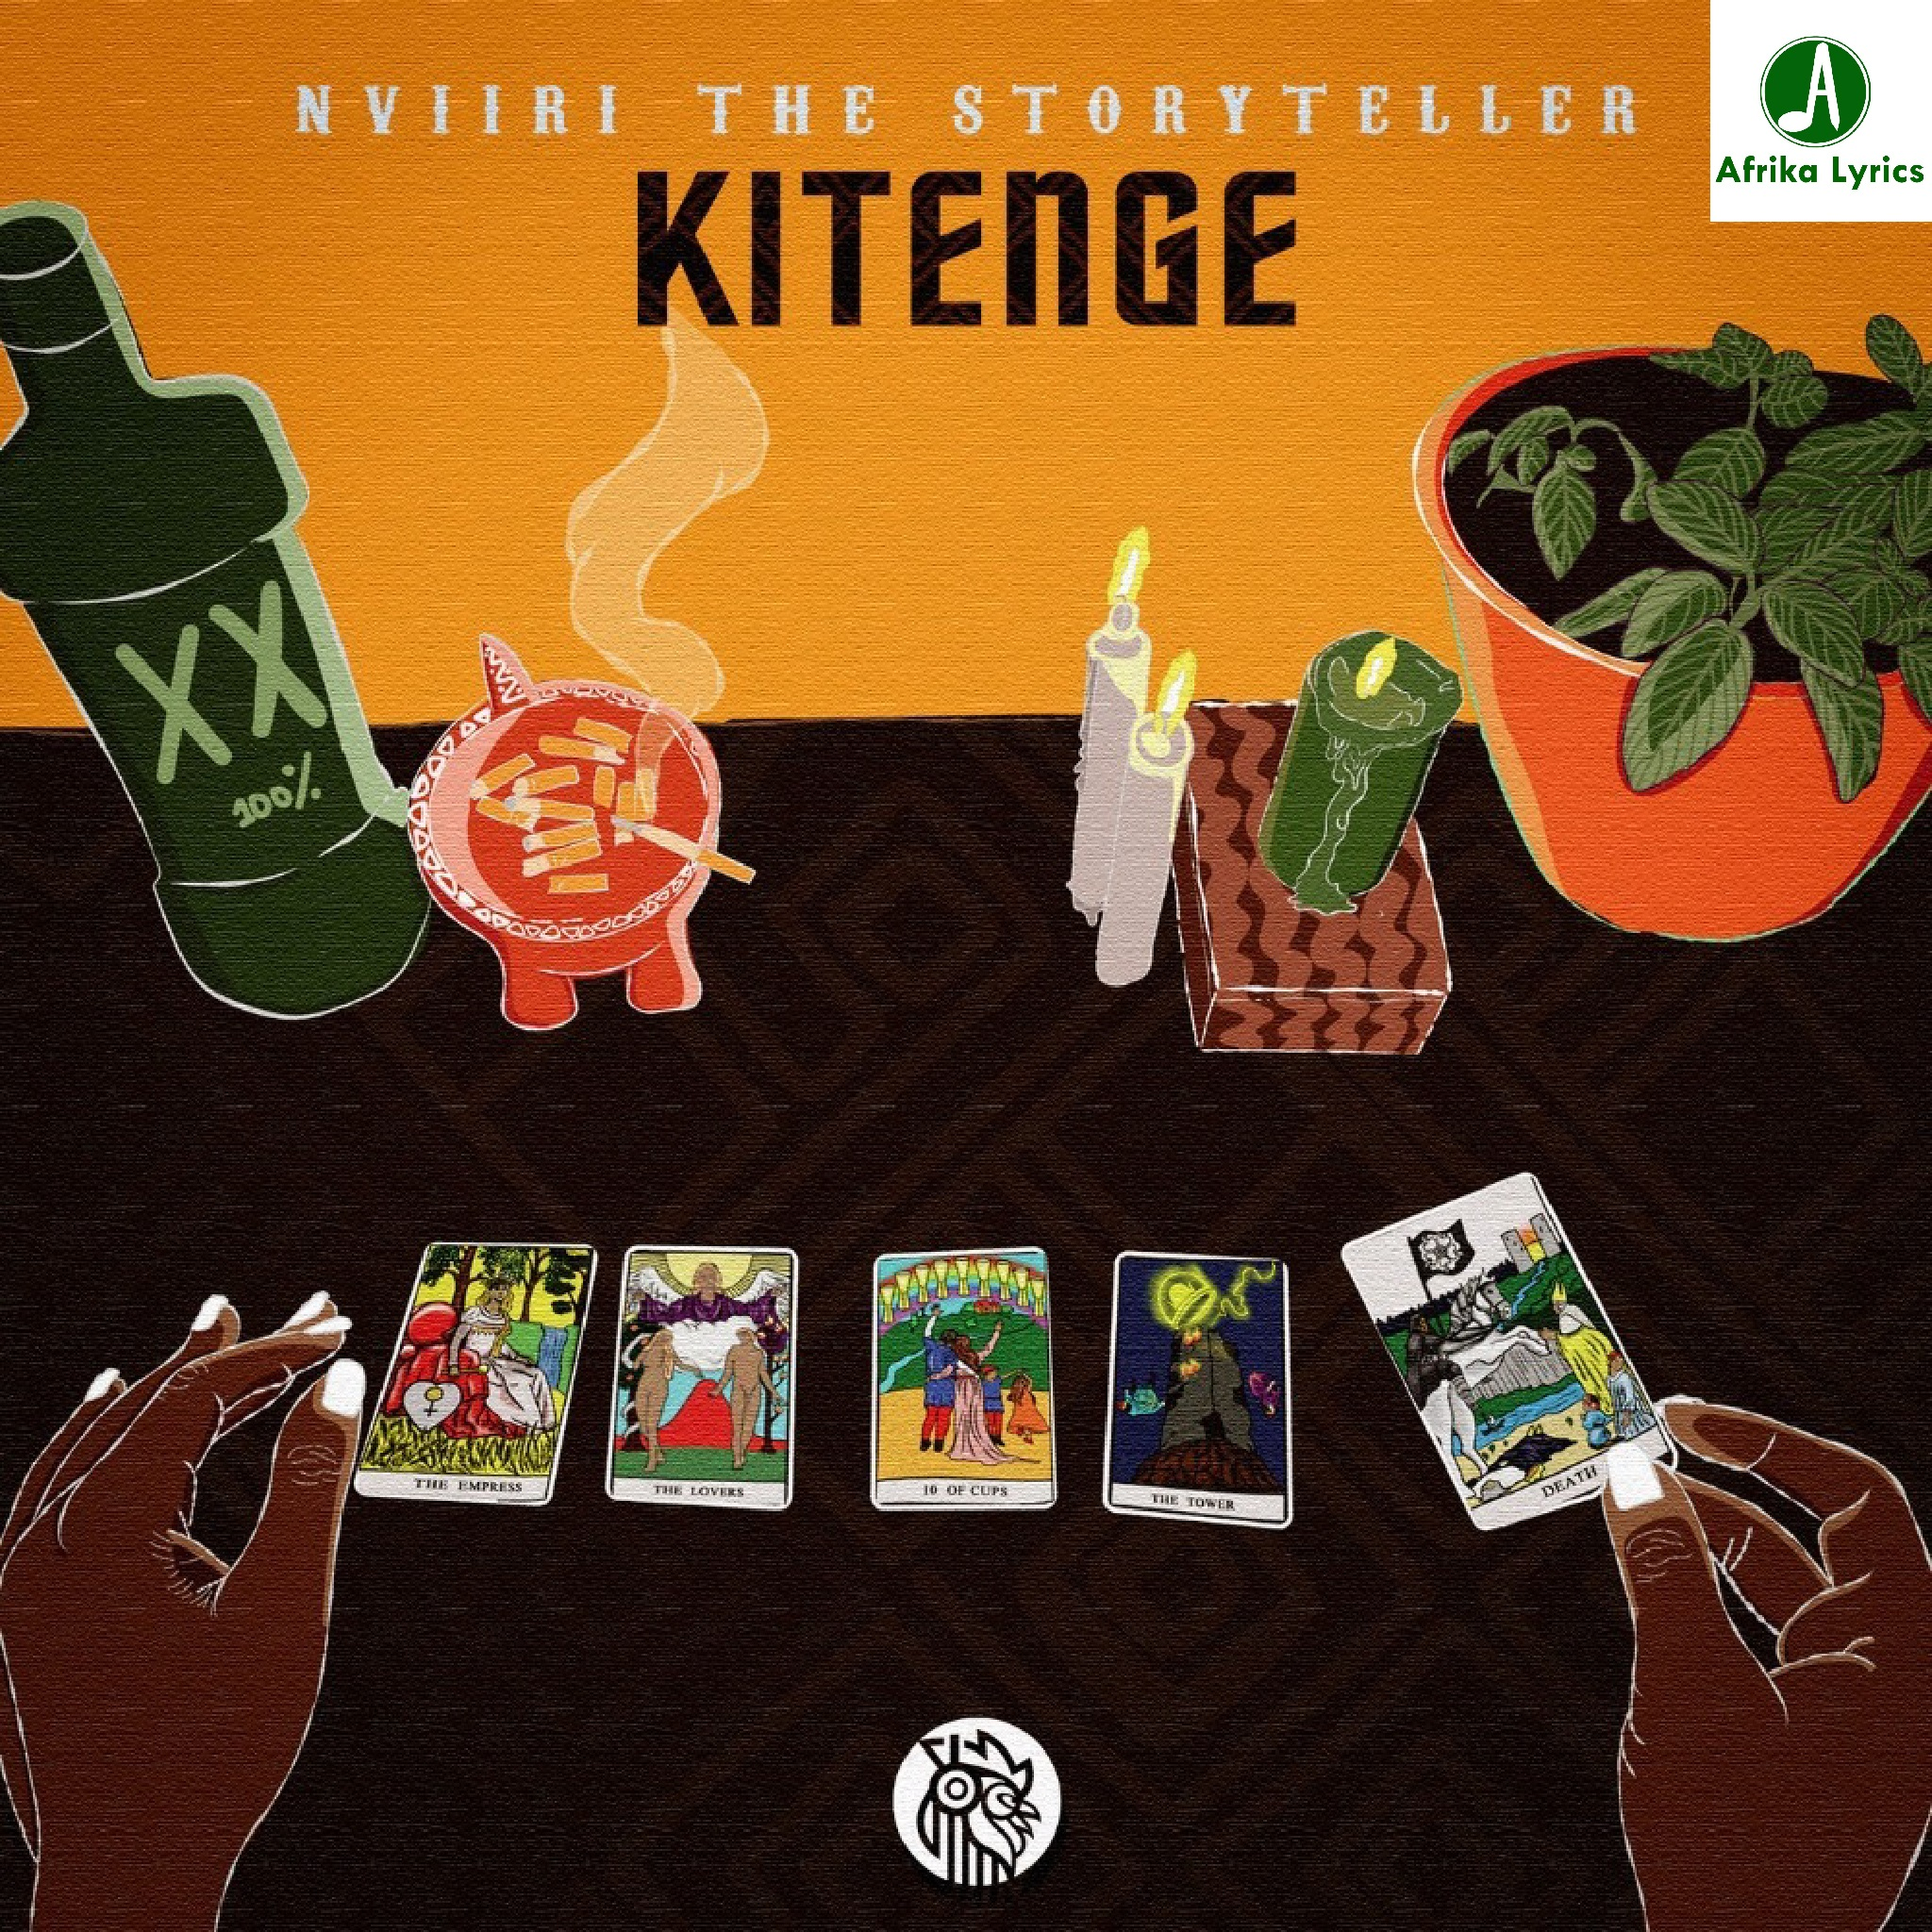 Kitenge by NVIIRI THE STORYTELLER - Album Tracklist and Lyrics | AfrikaLyrics